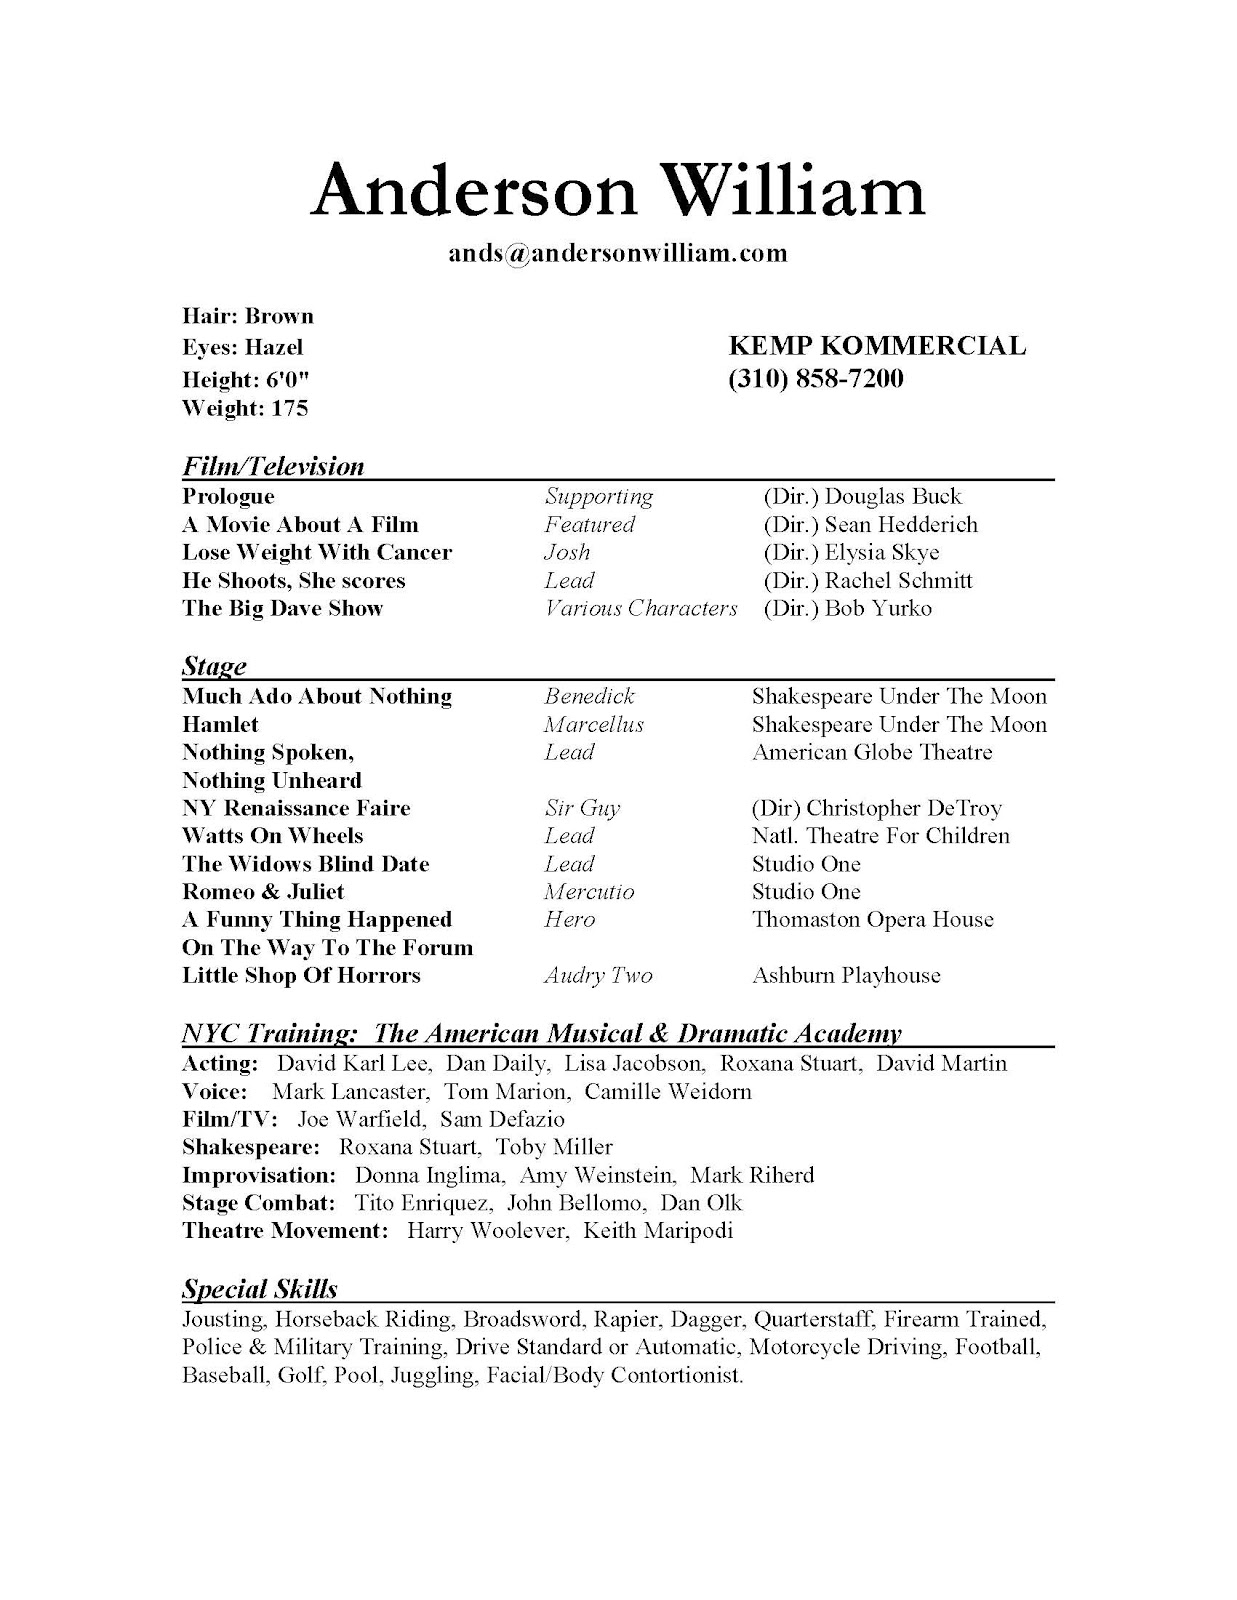 Now a few Theatre Resume samples: